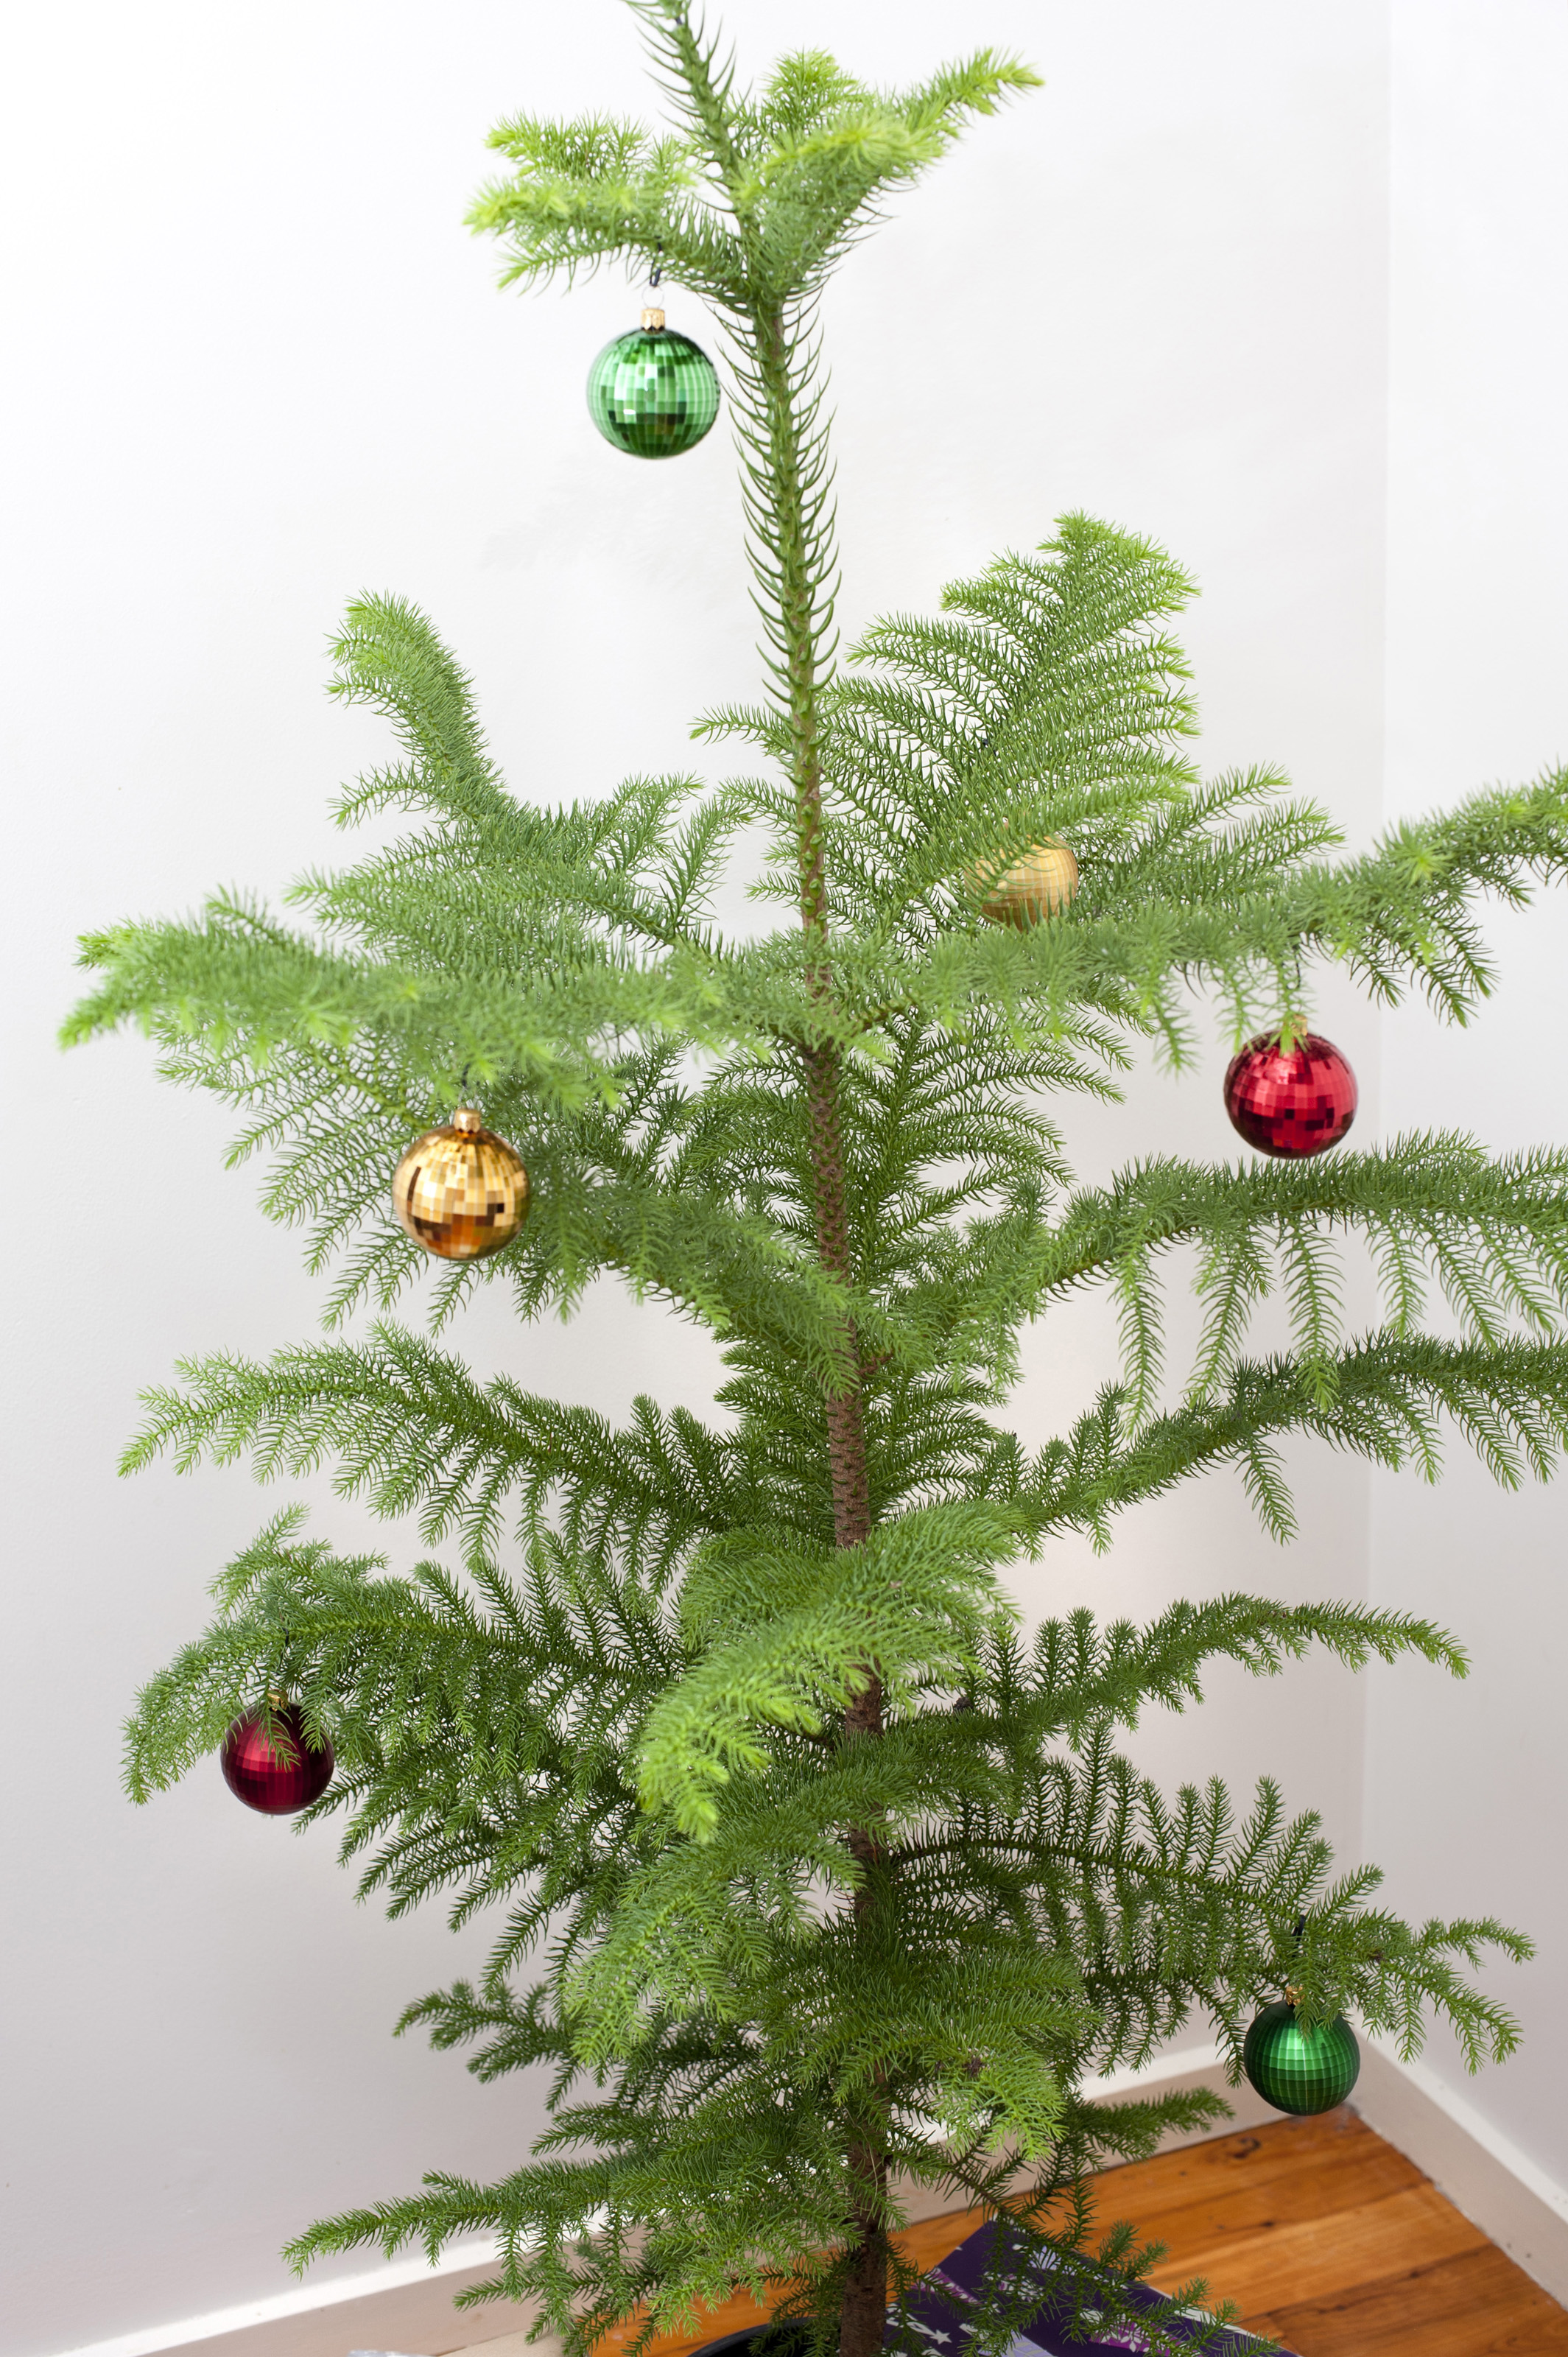 Free Stock Photo 8667 Real Christmas tree with colourful baubles ...